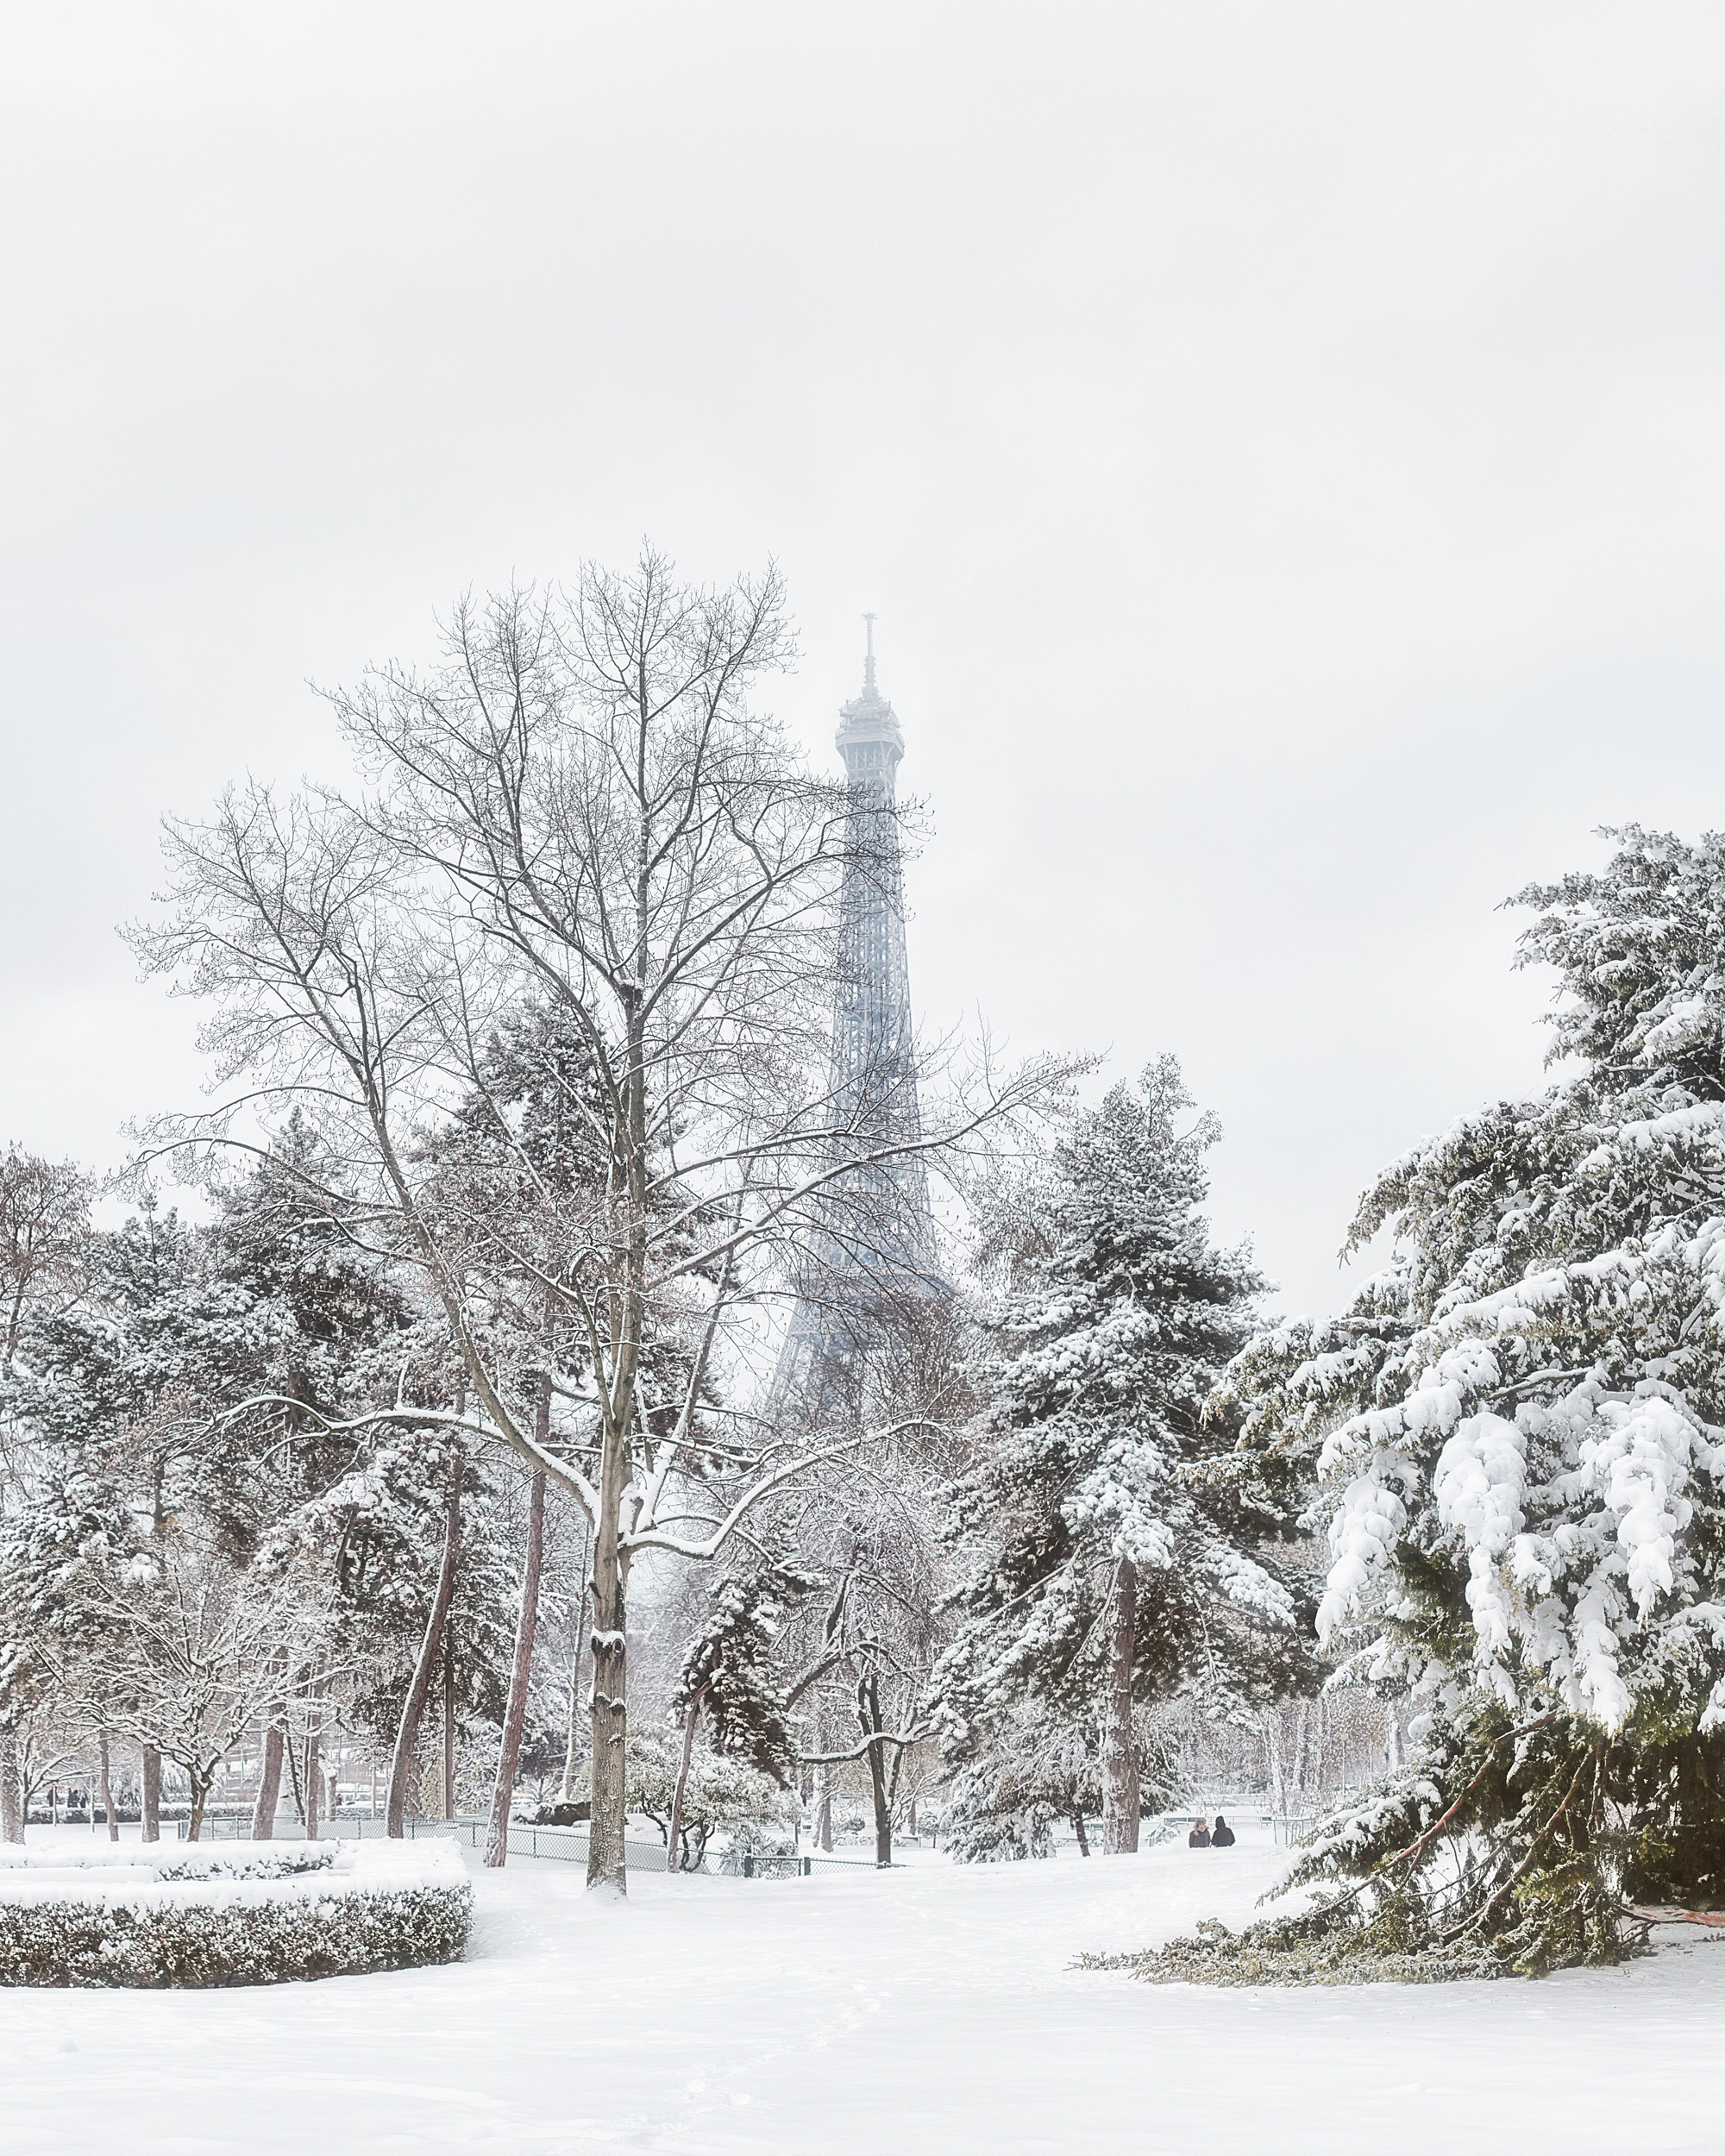 Tour Eiffel from Trocadero gardens, Winter 2018